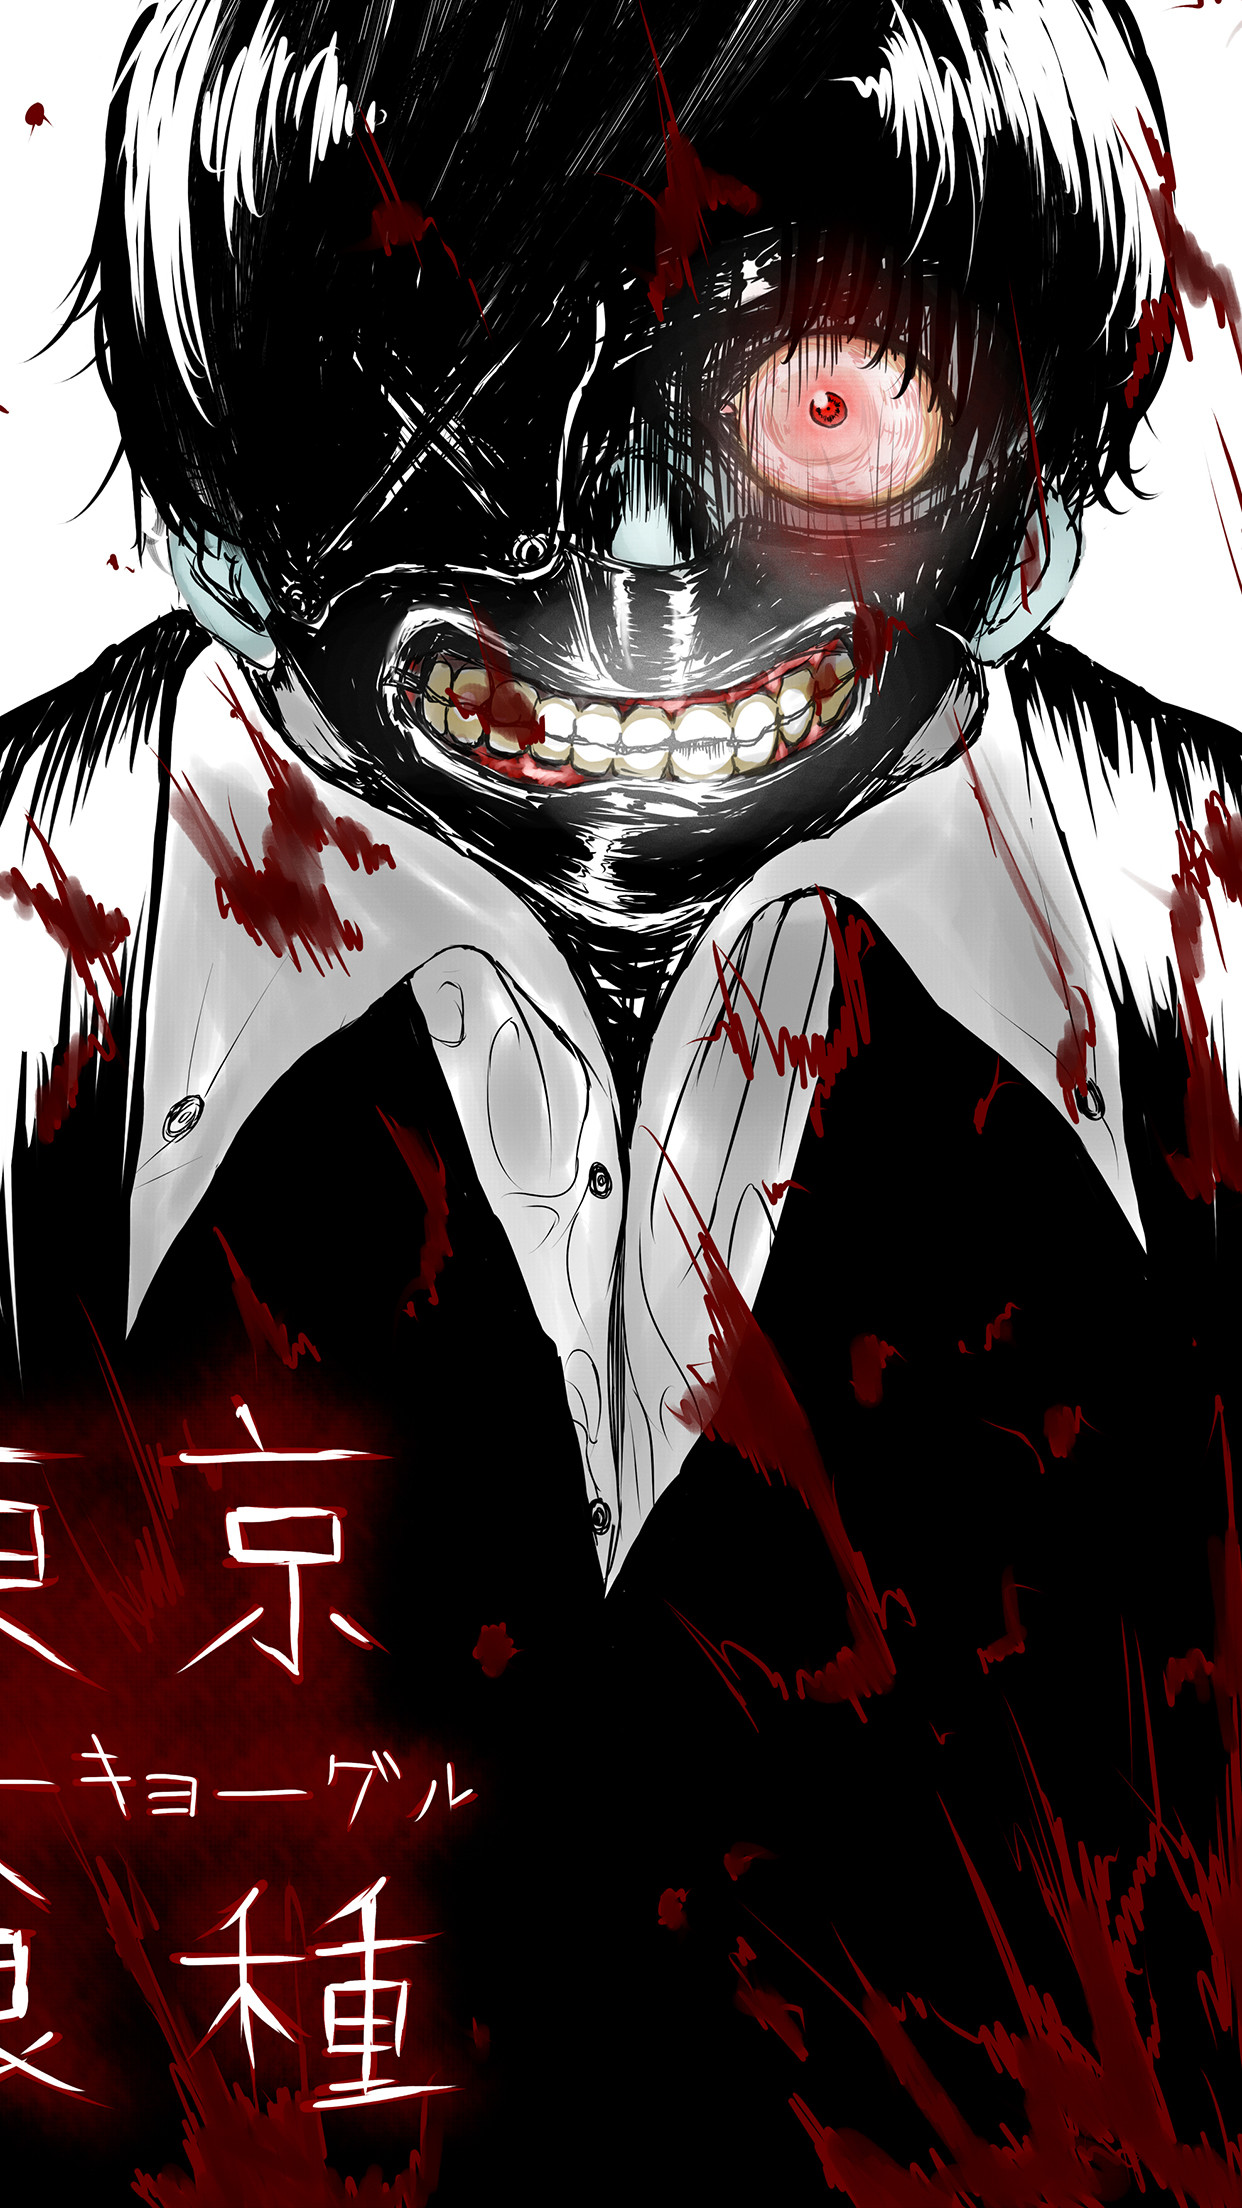 Images have the power to move your emotions like few things in life. Tokyo Ghoul Fanart Iphone 3wallpapers Parallax Les - Anime ...